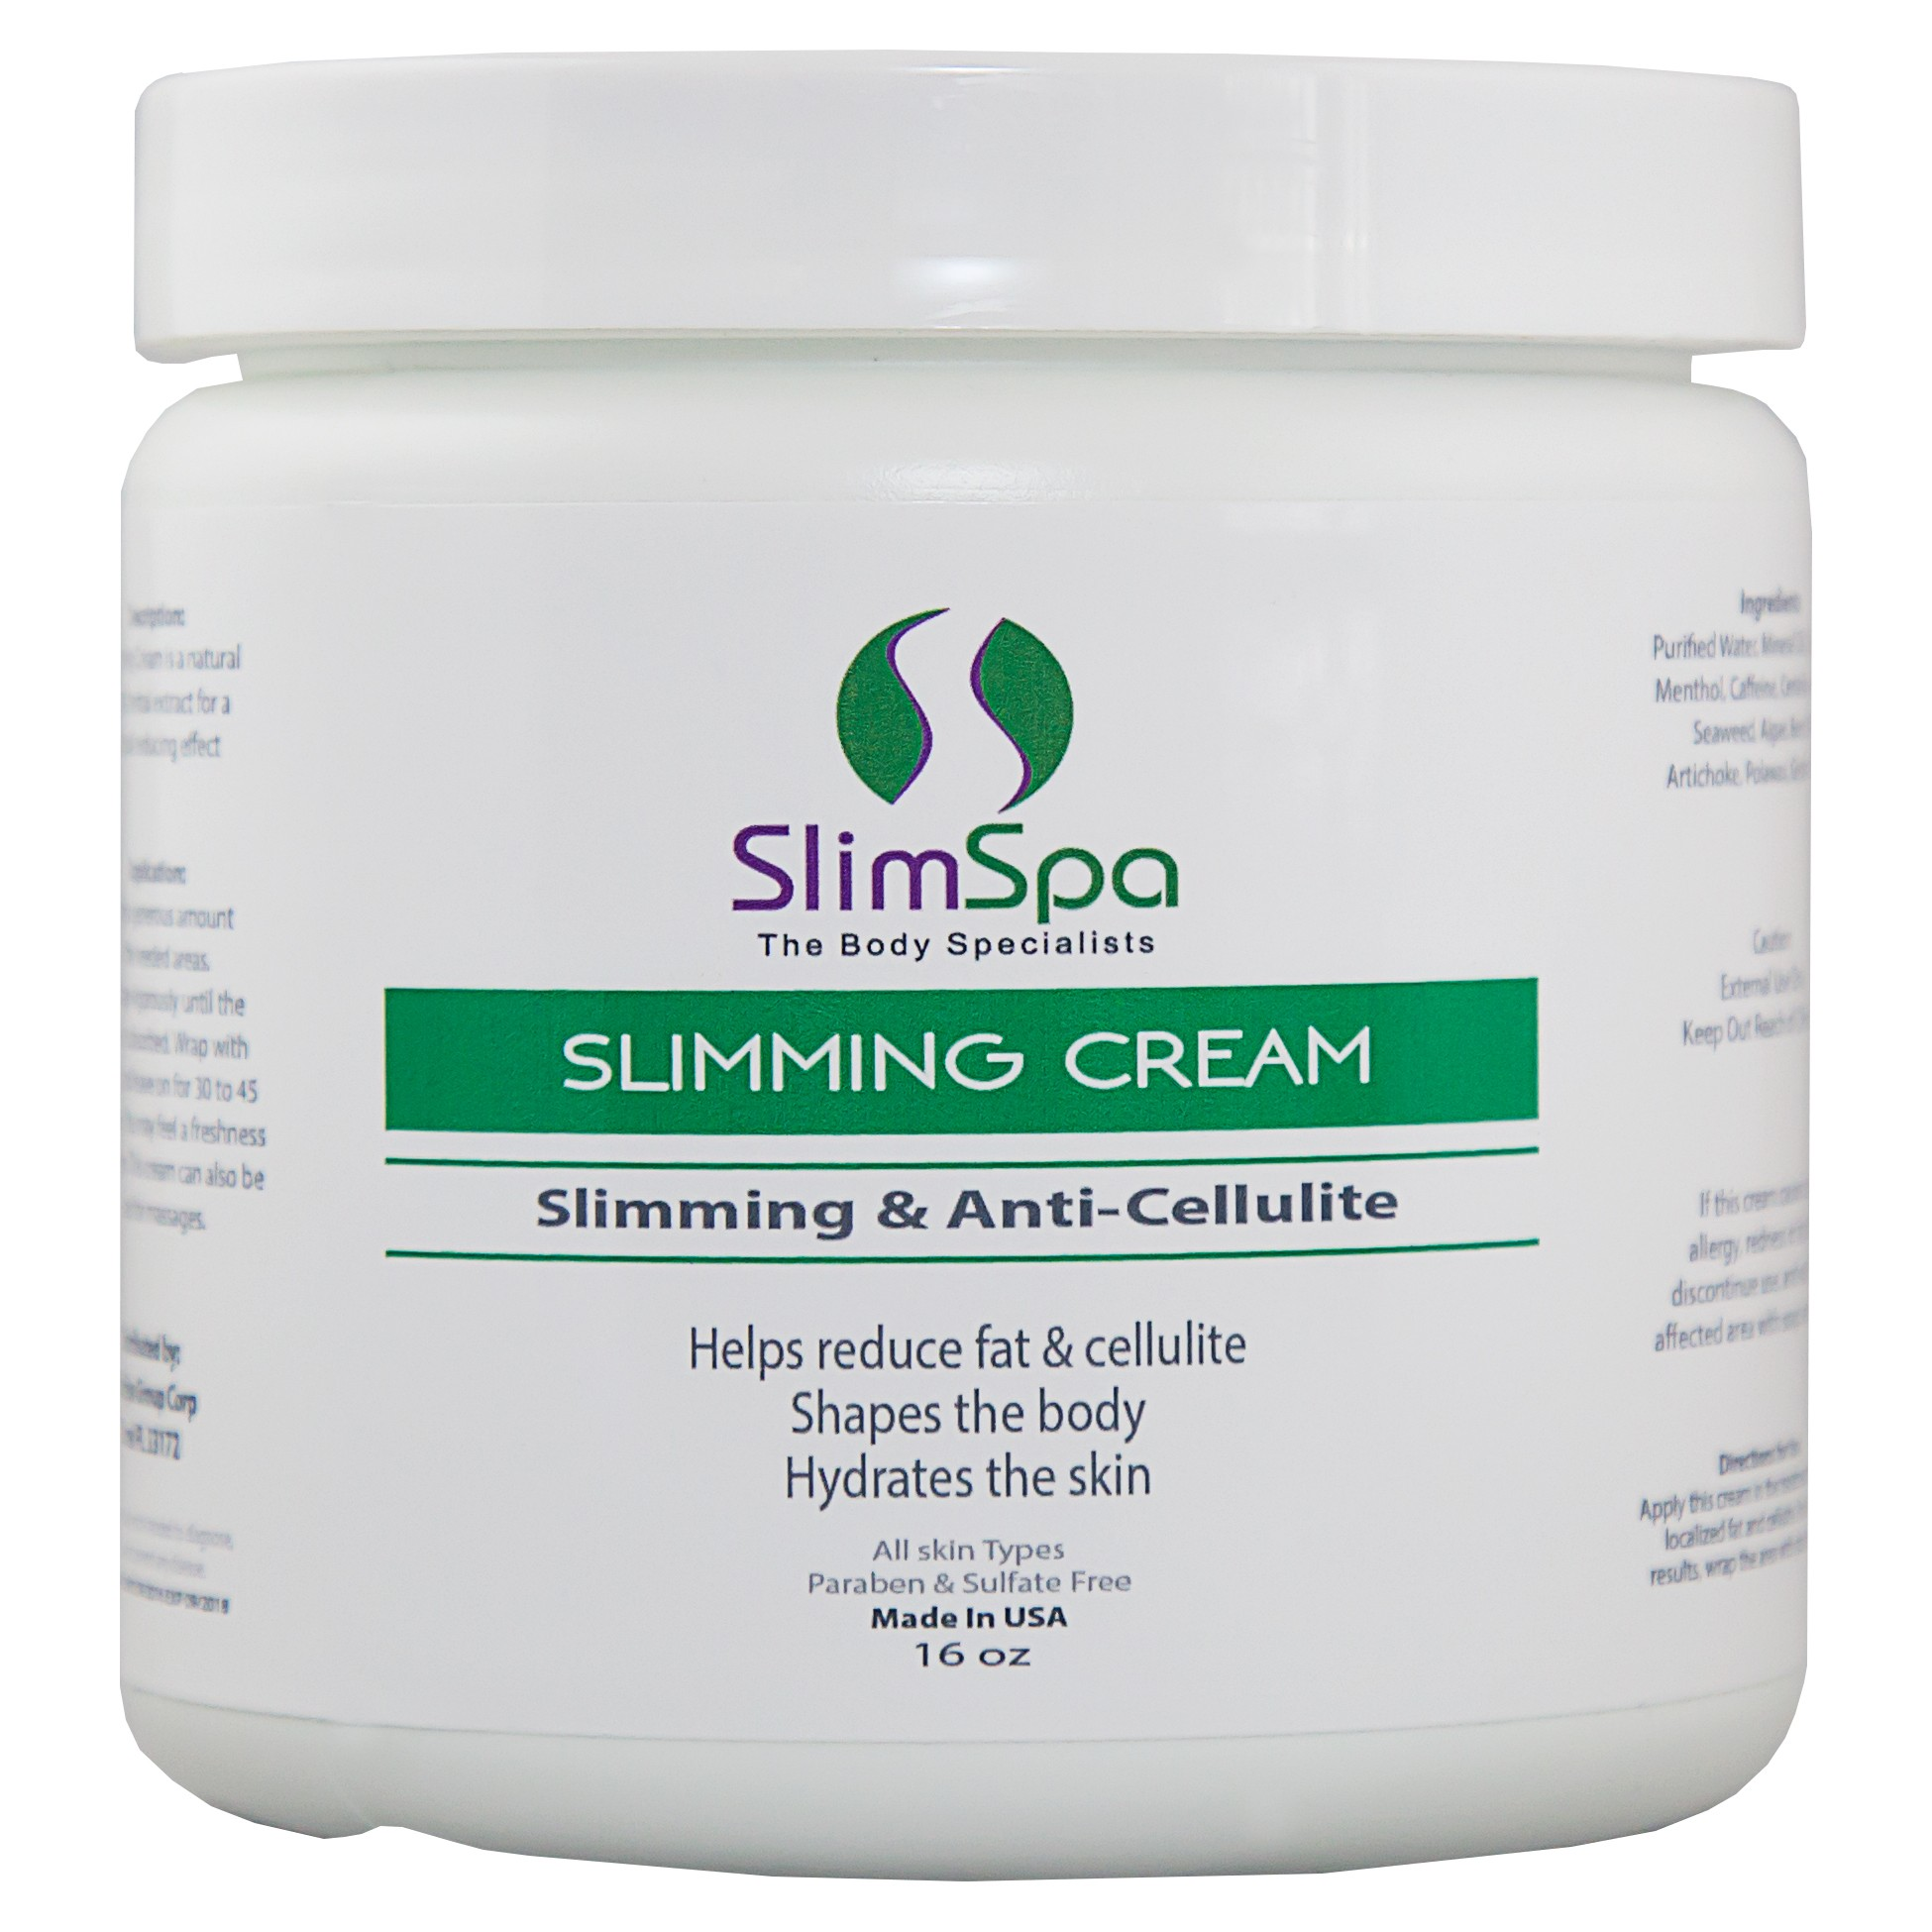 197c549c57f Slimming   Anti-Cellulite Cream 16 oz - Body - PRODUCTS